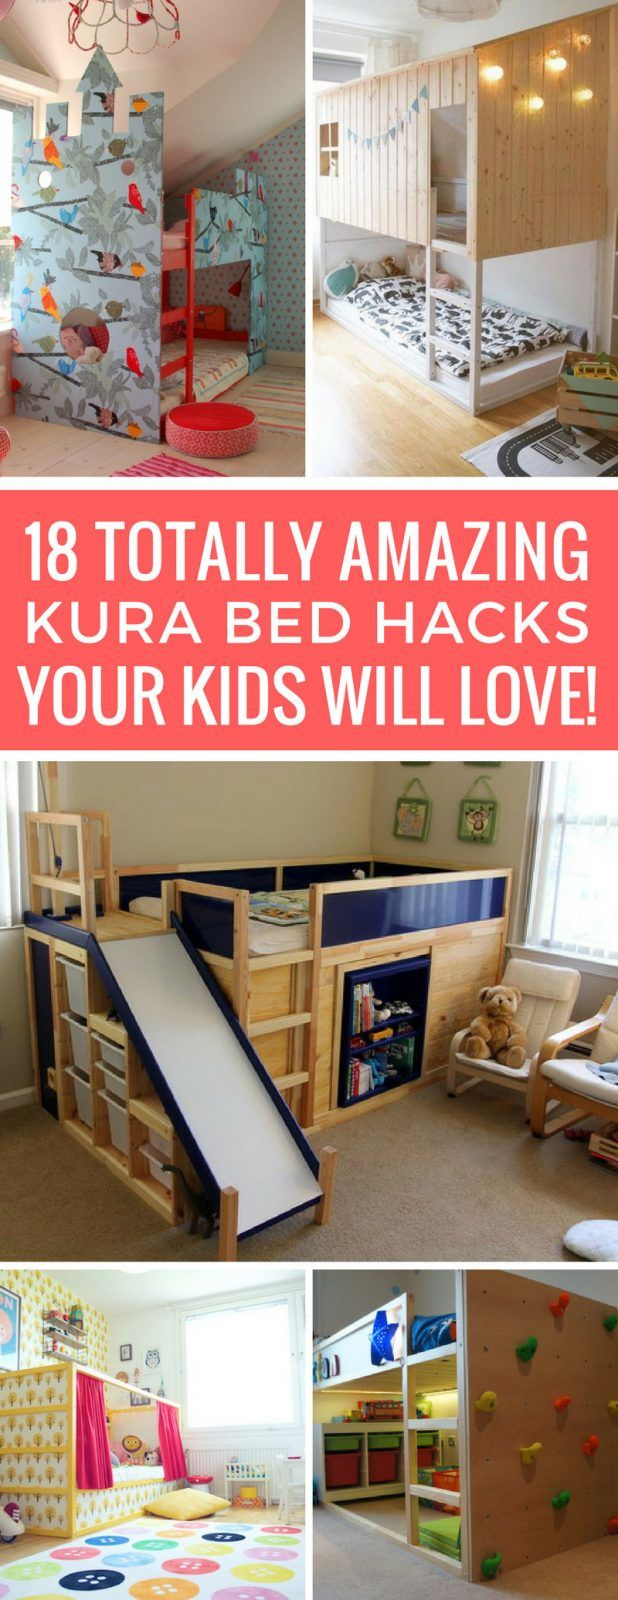 18 Amazing KURA Bed Hacks to Turn a Boring Bed into Something Special! images